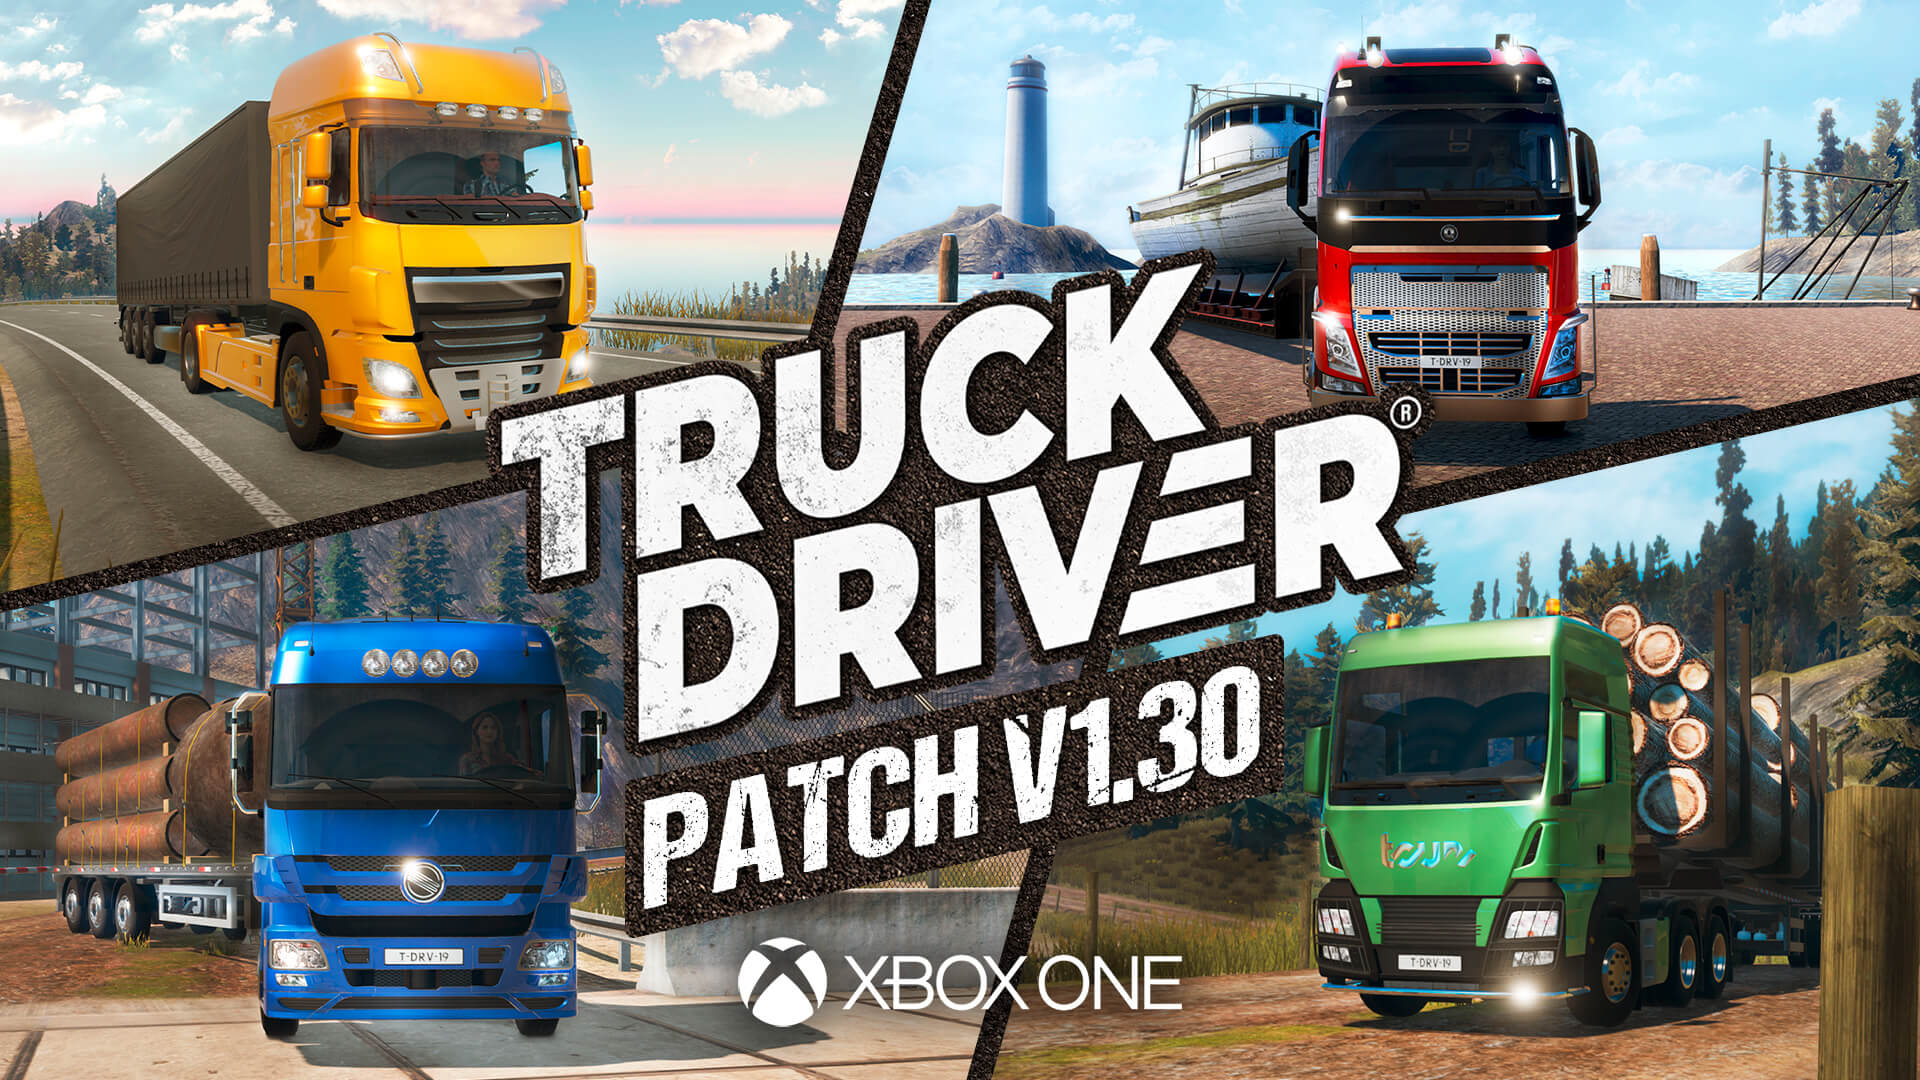 Truck Driver update v1.30 now live on Xbox One